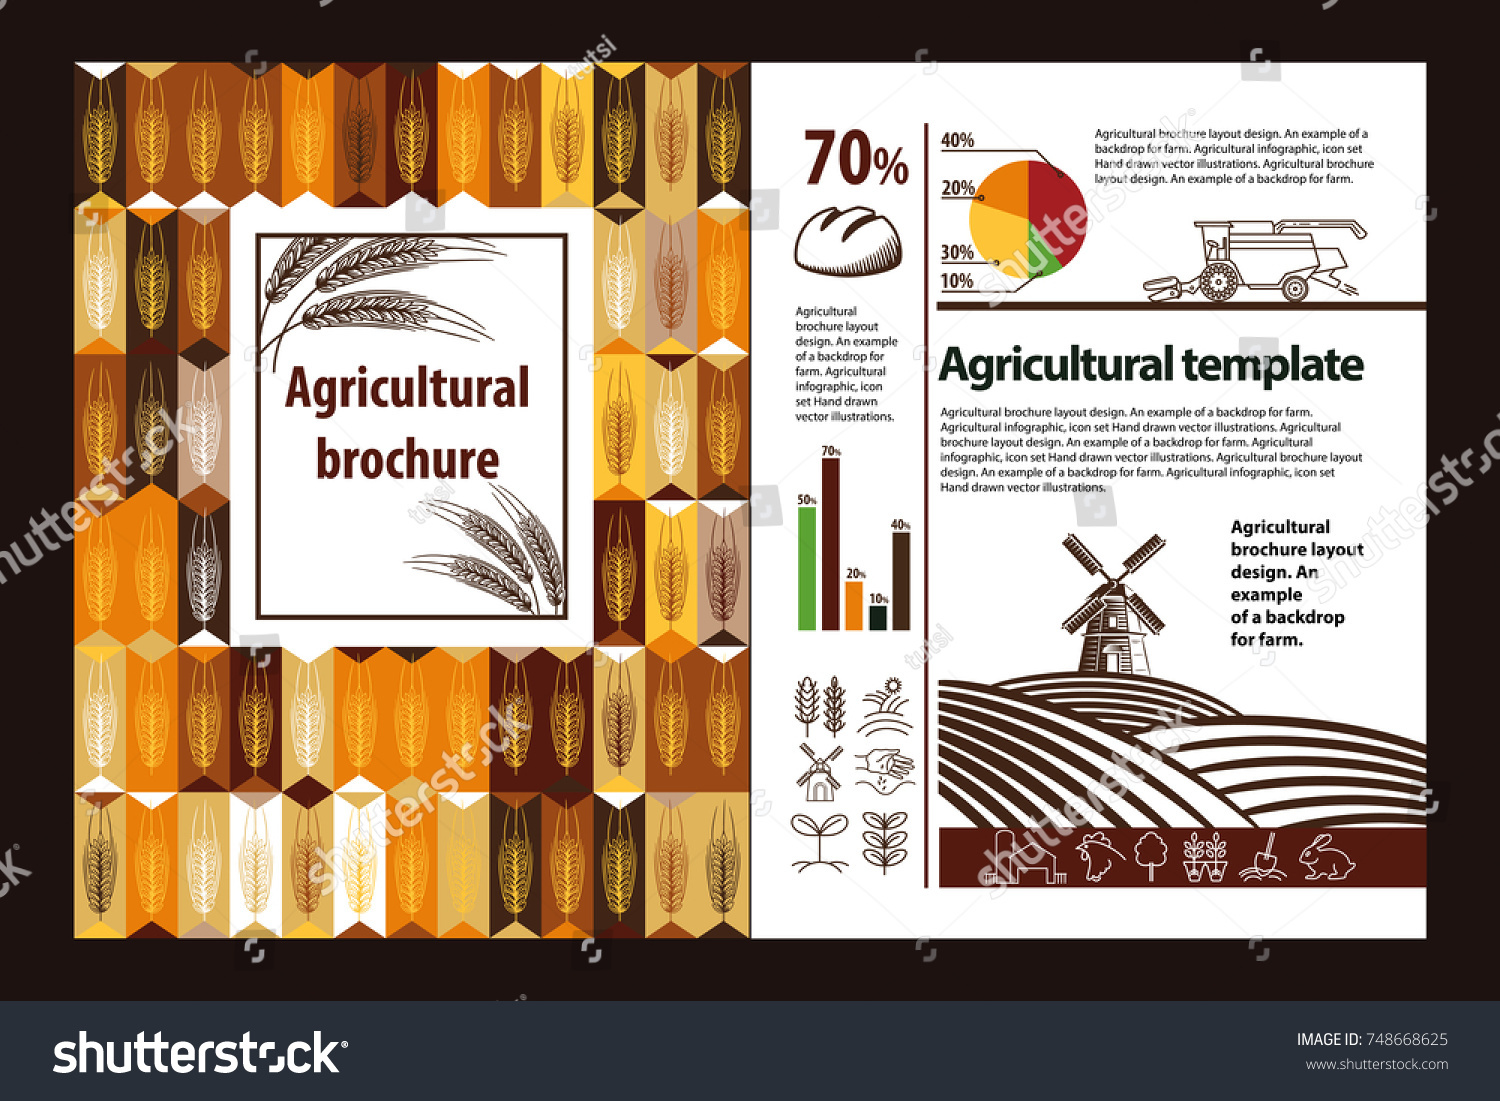 Agricultural Brochure Layout Design An Example Of A Backdrop For Farm Infographic